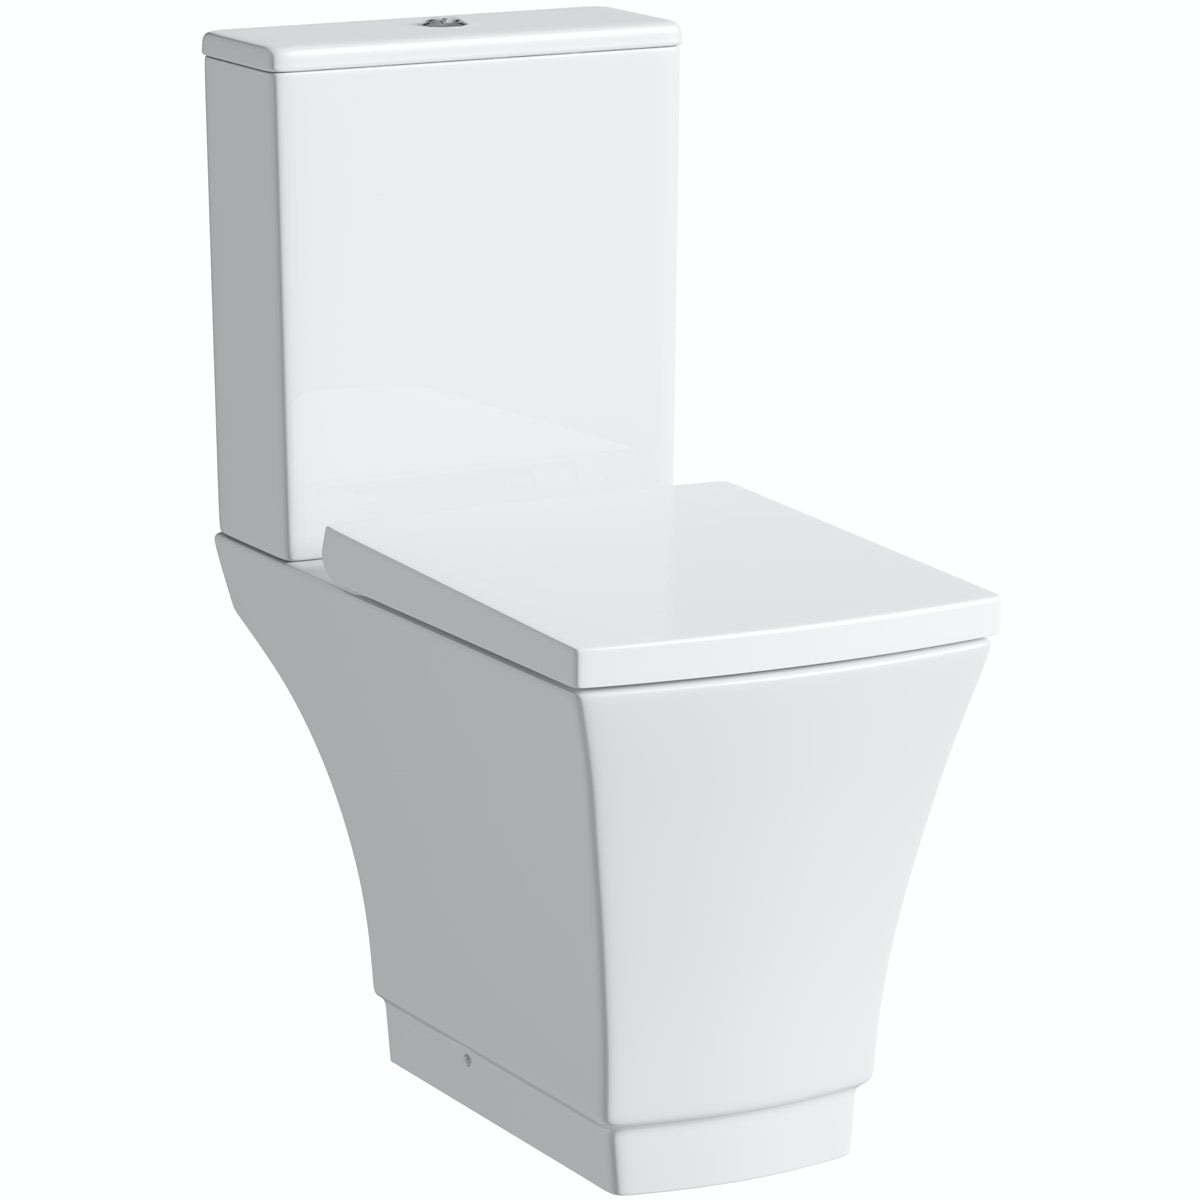 Mode Austin close coupled toilet with soft close seat with pan connector